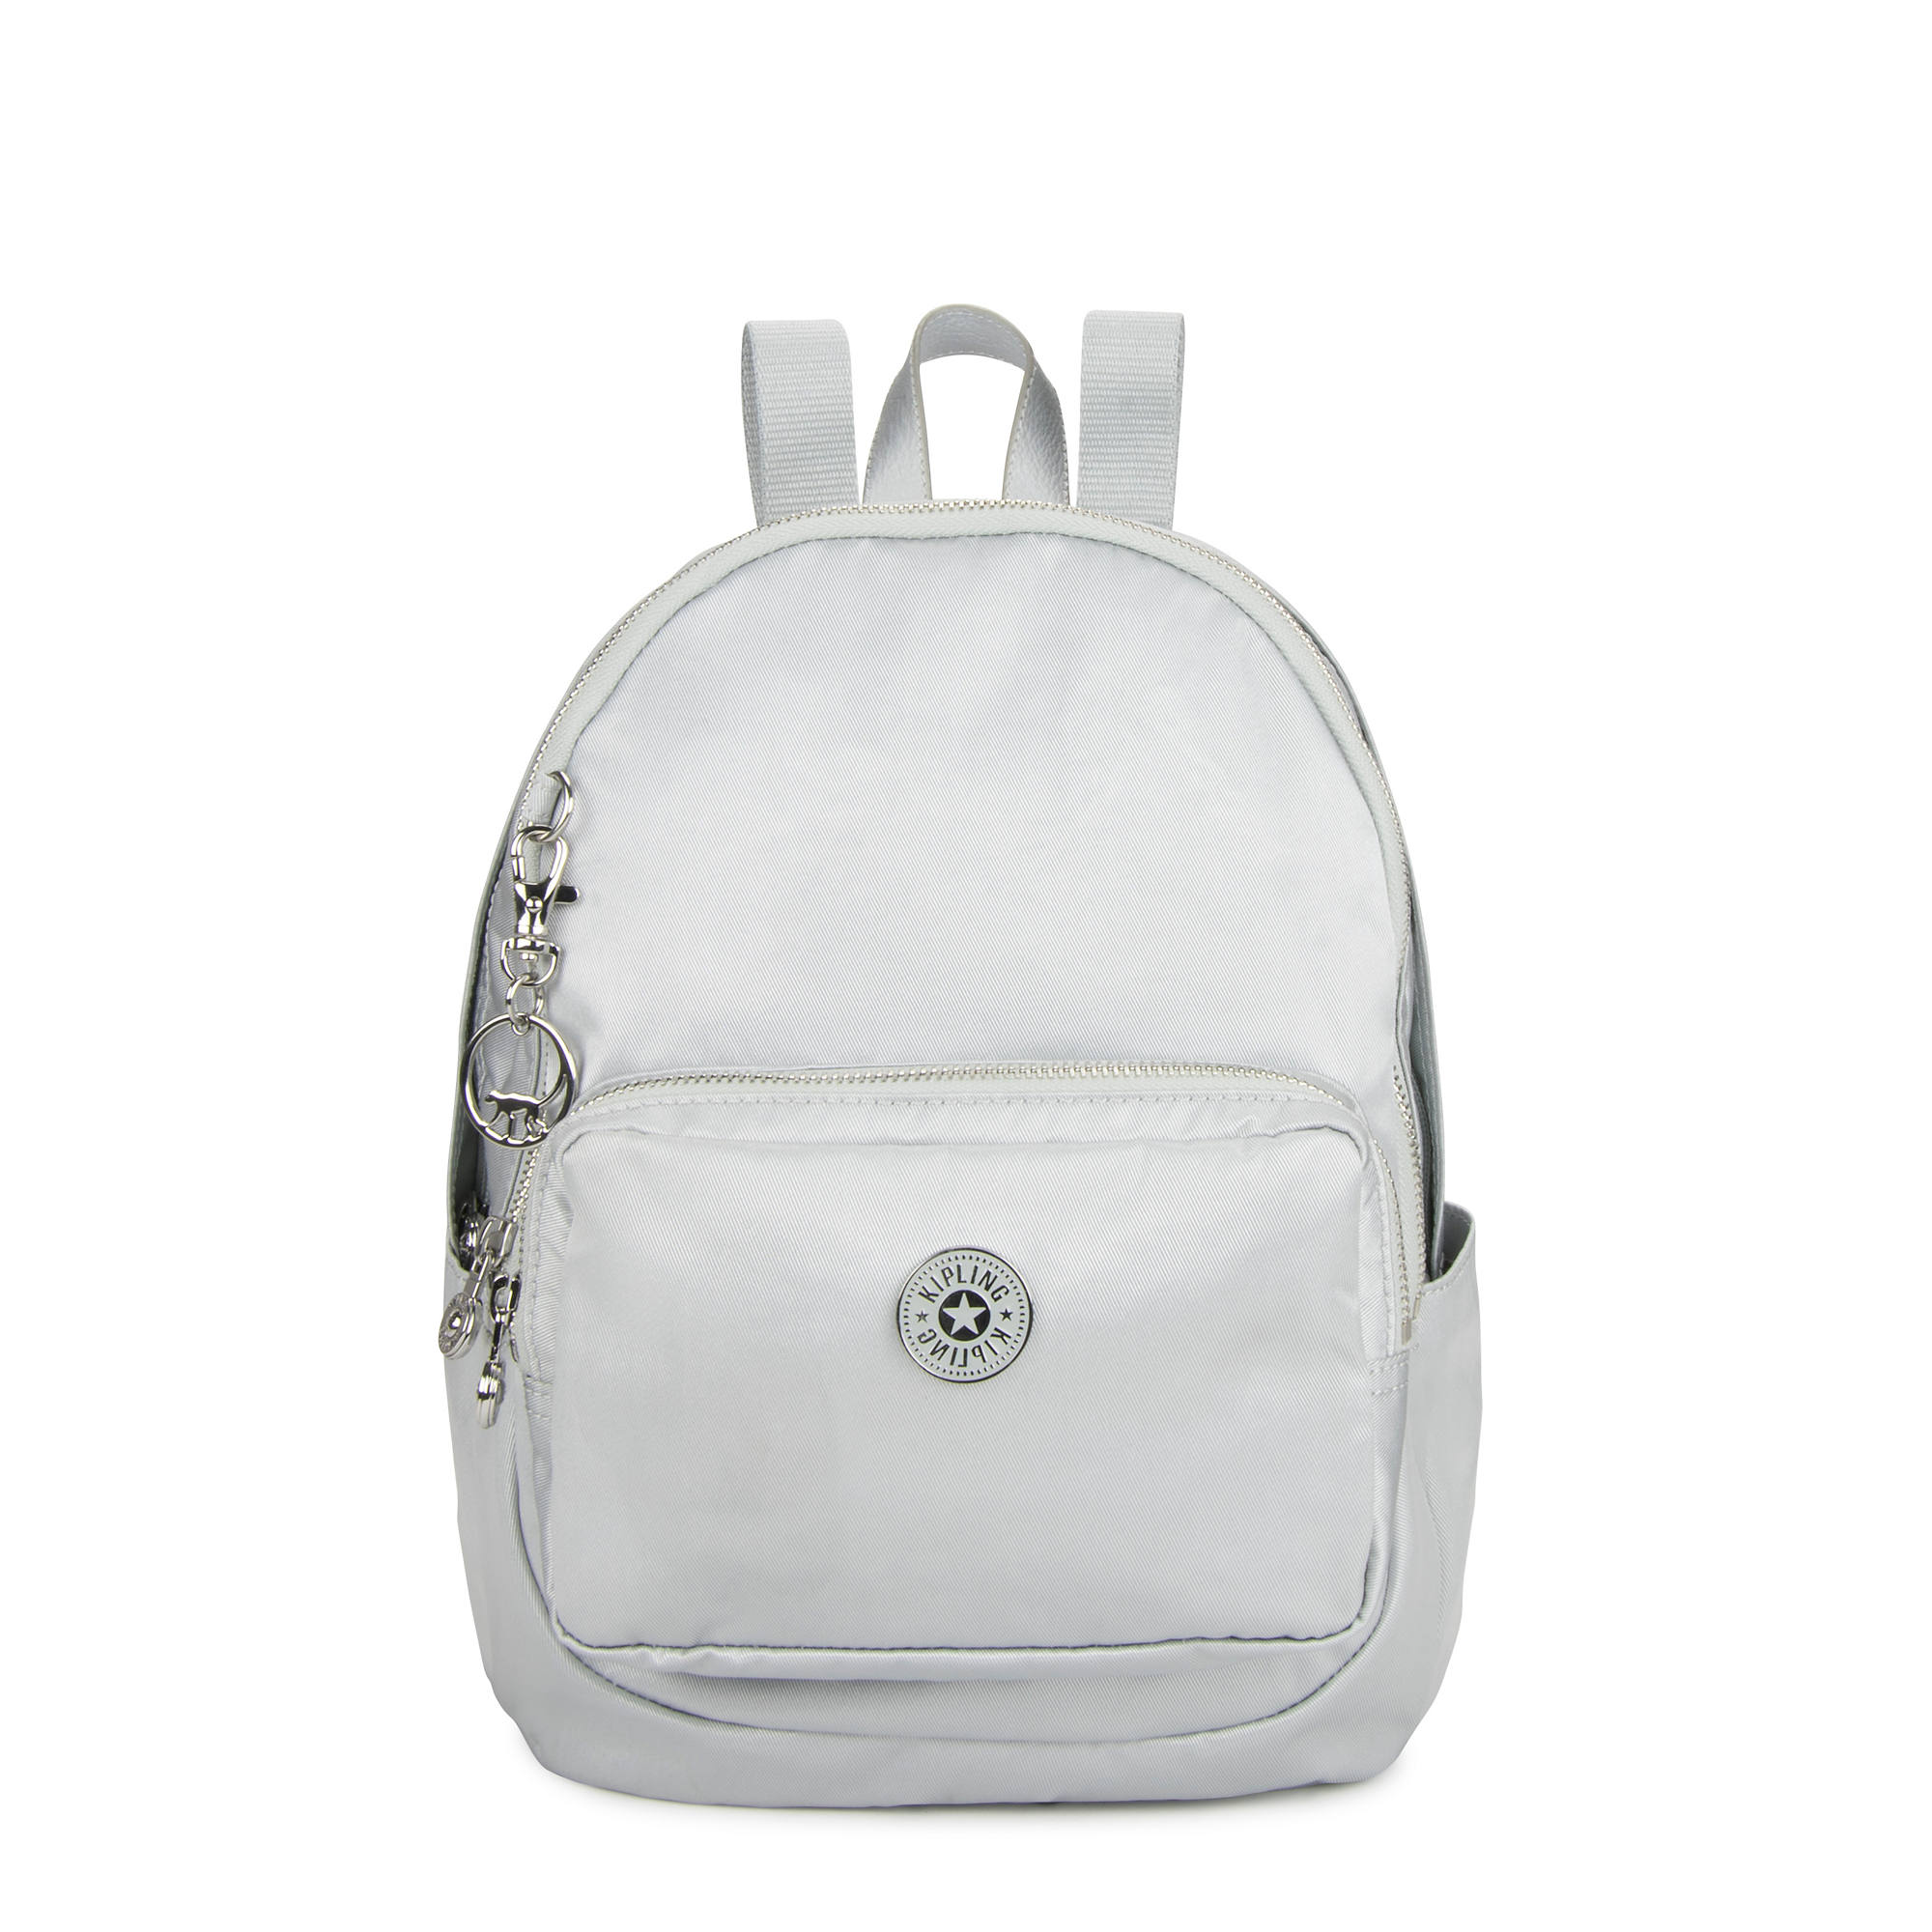 66477c4207c Tabbie Small Backpack,Silver,large